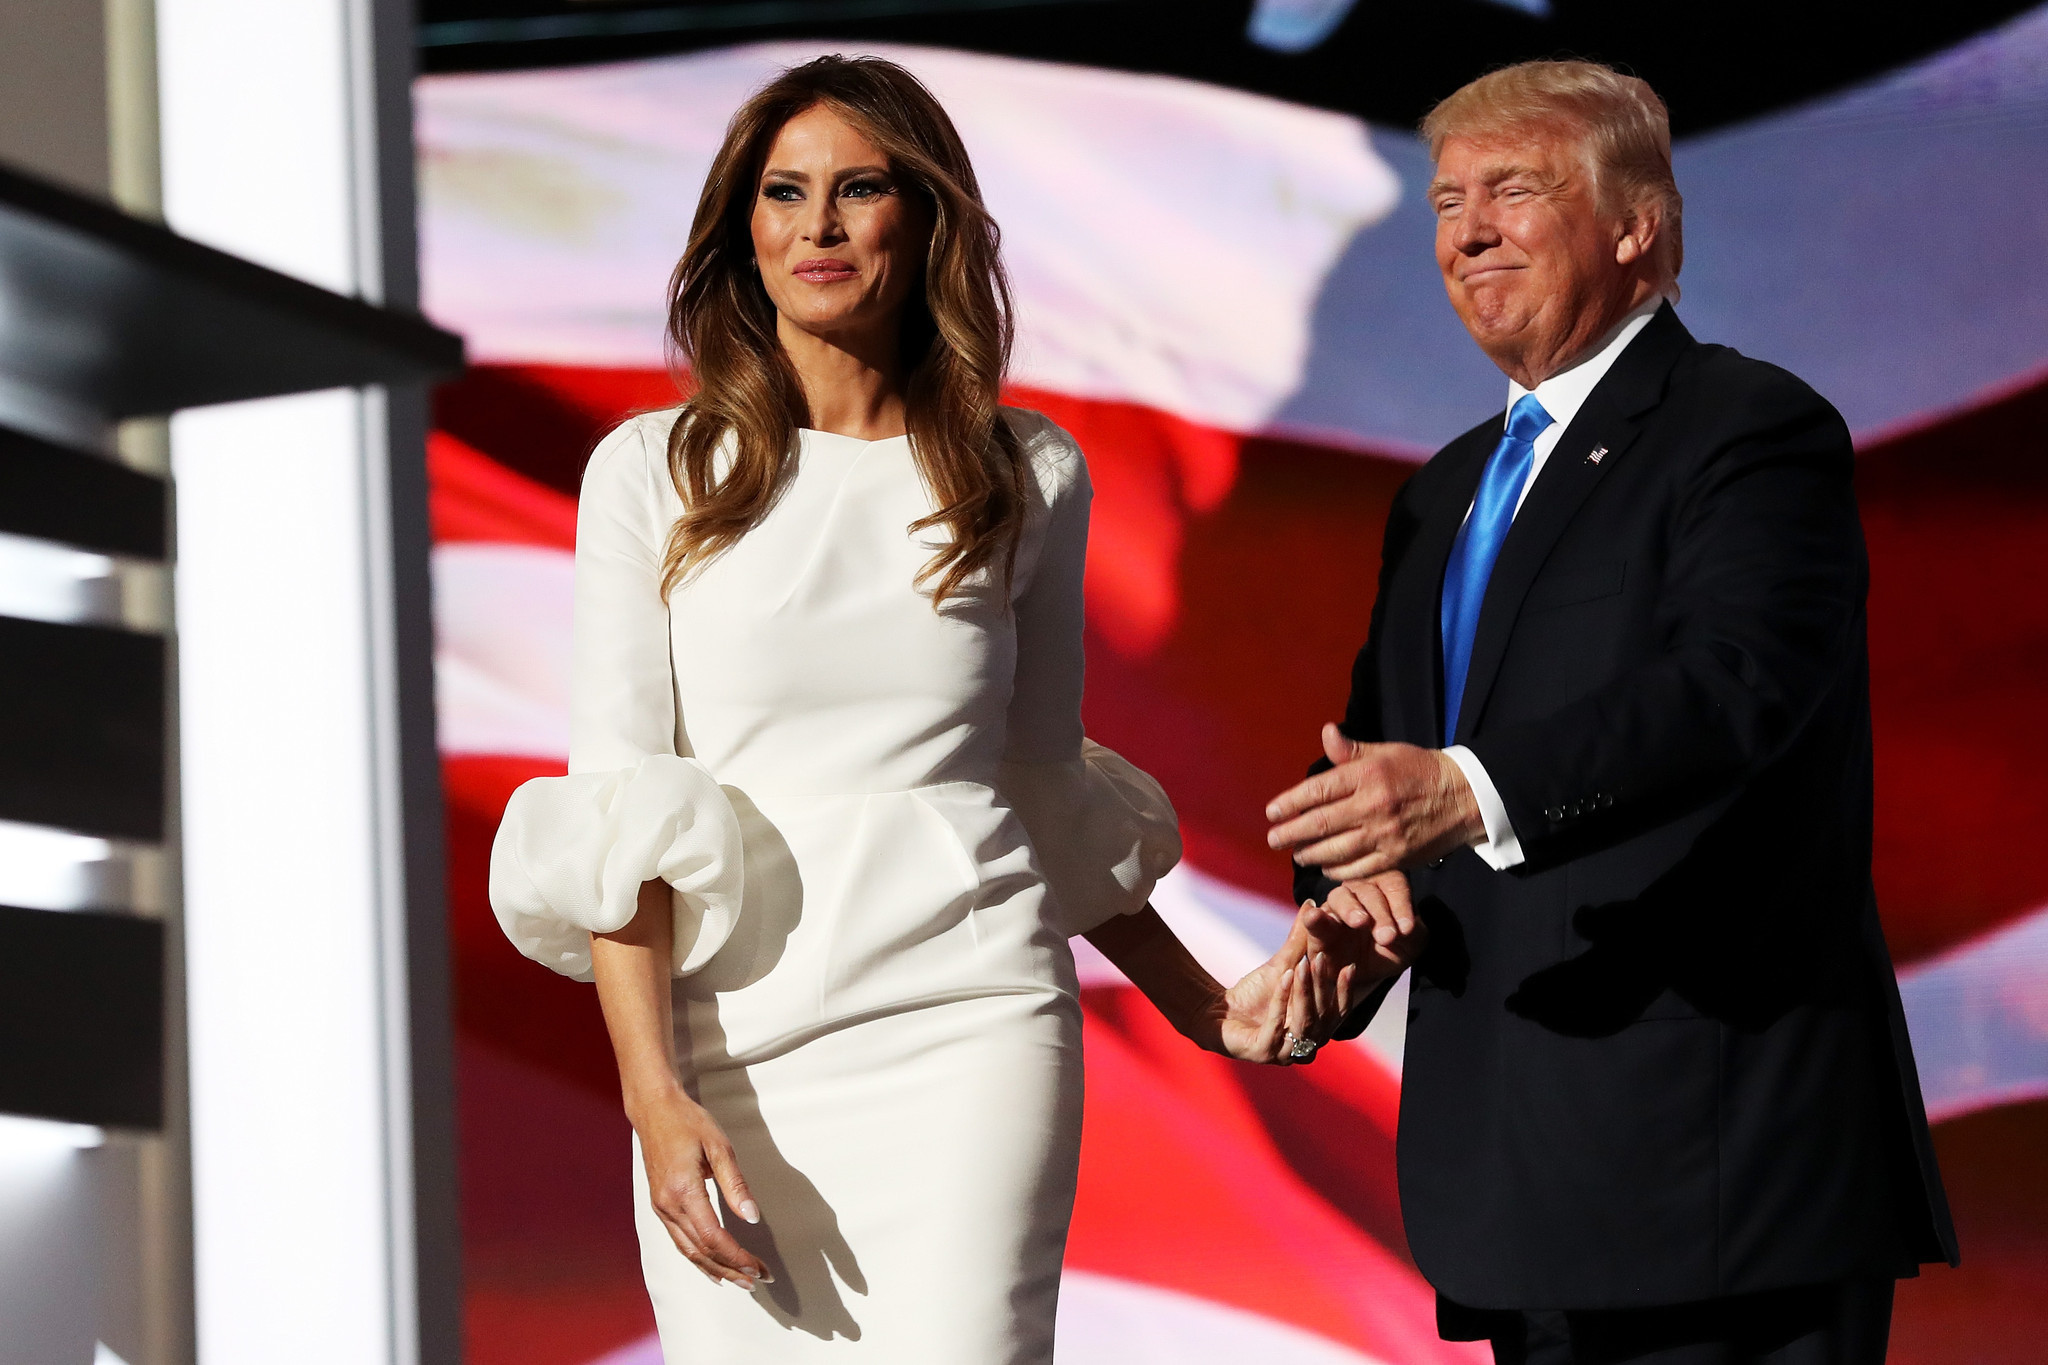 The $2,190 White Dress Melania Trump Wore at the Republic National Convention Sold out in an Hour ...